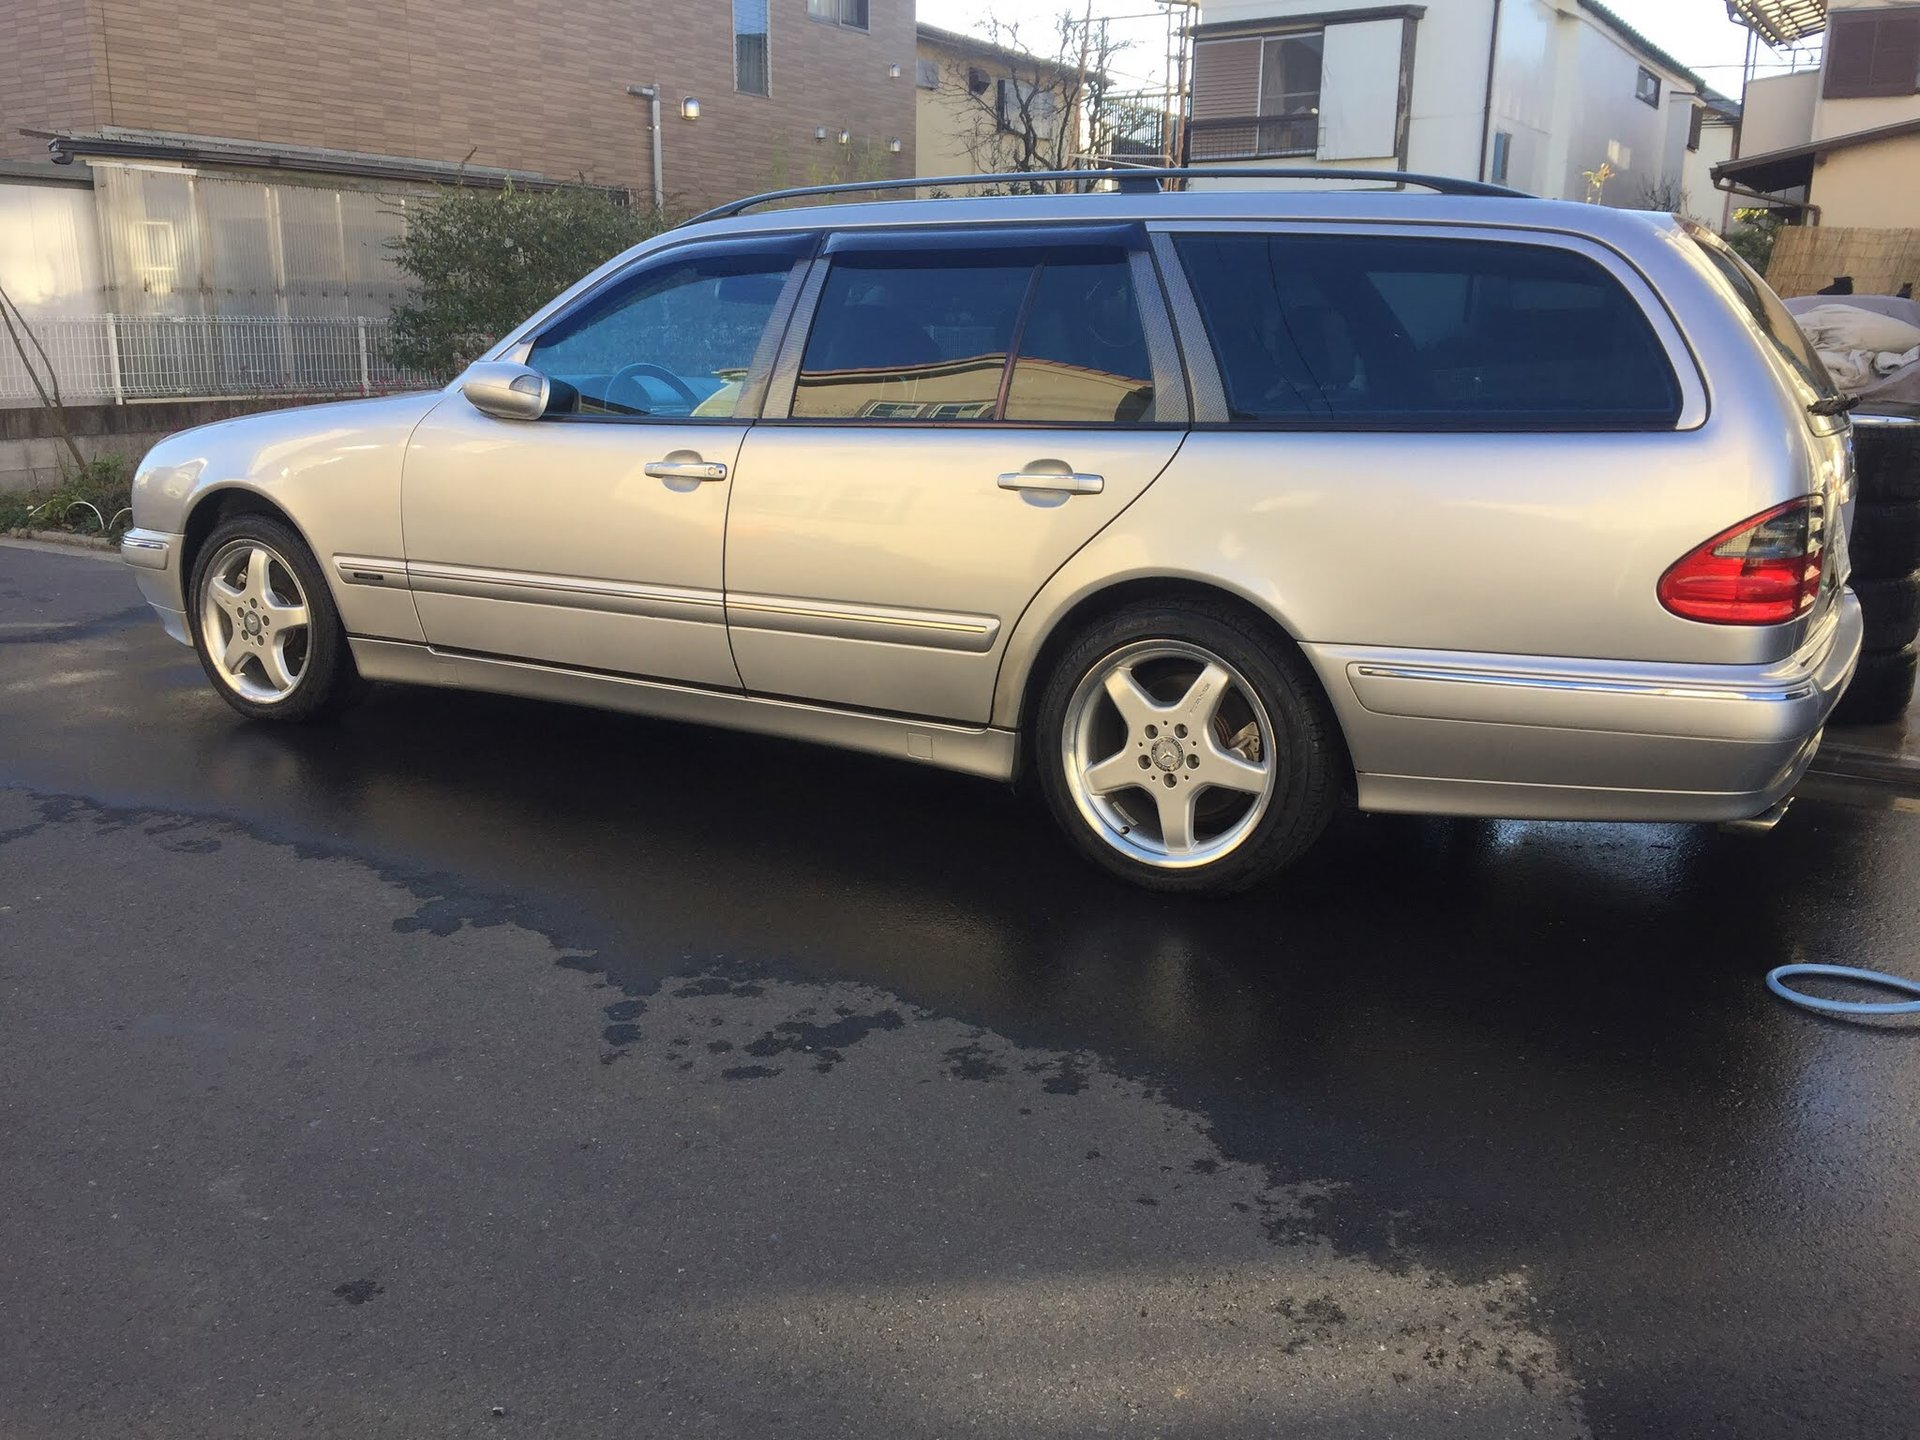 2001 E55 AMG Wagon buying advice | Page 2 | Mercedes-Benz Forum